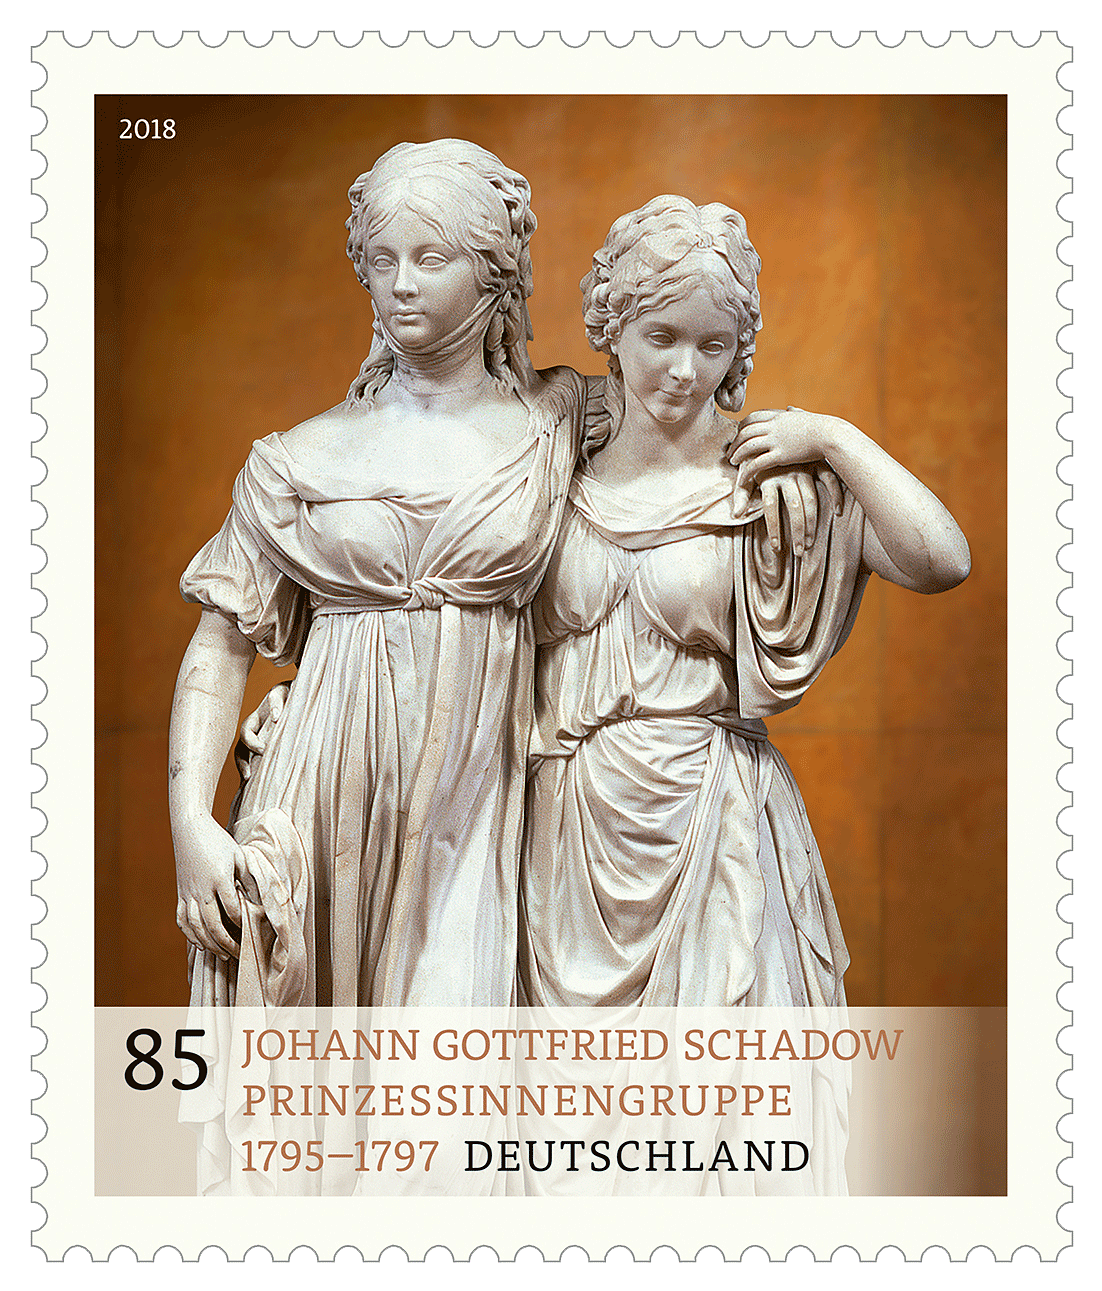 https://www.borek.de/briefmarke-prinzessinnengruppe